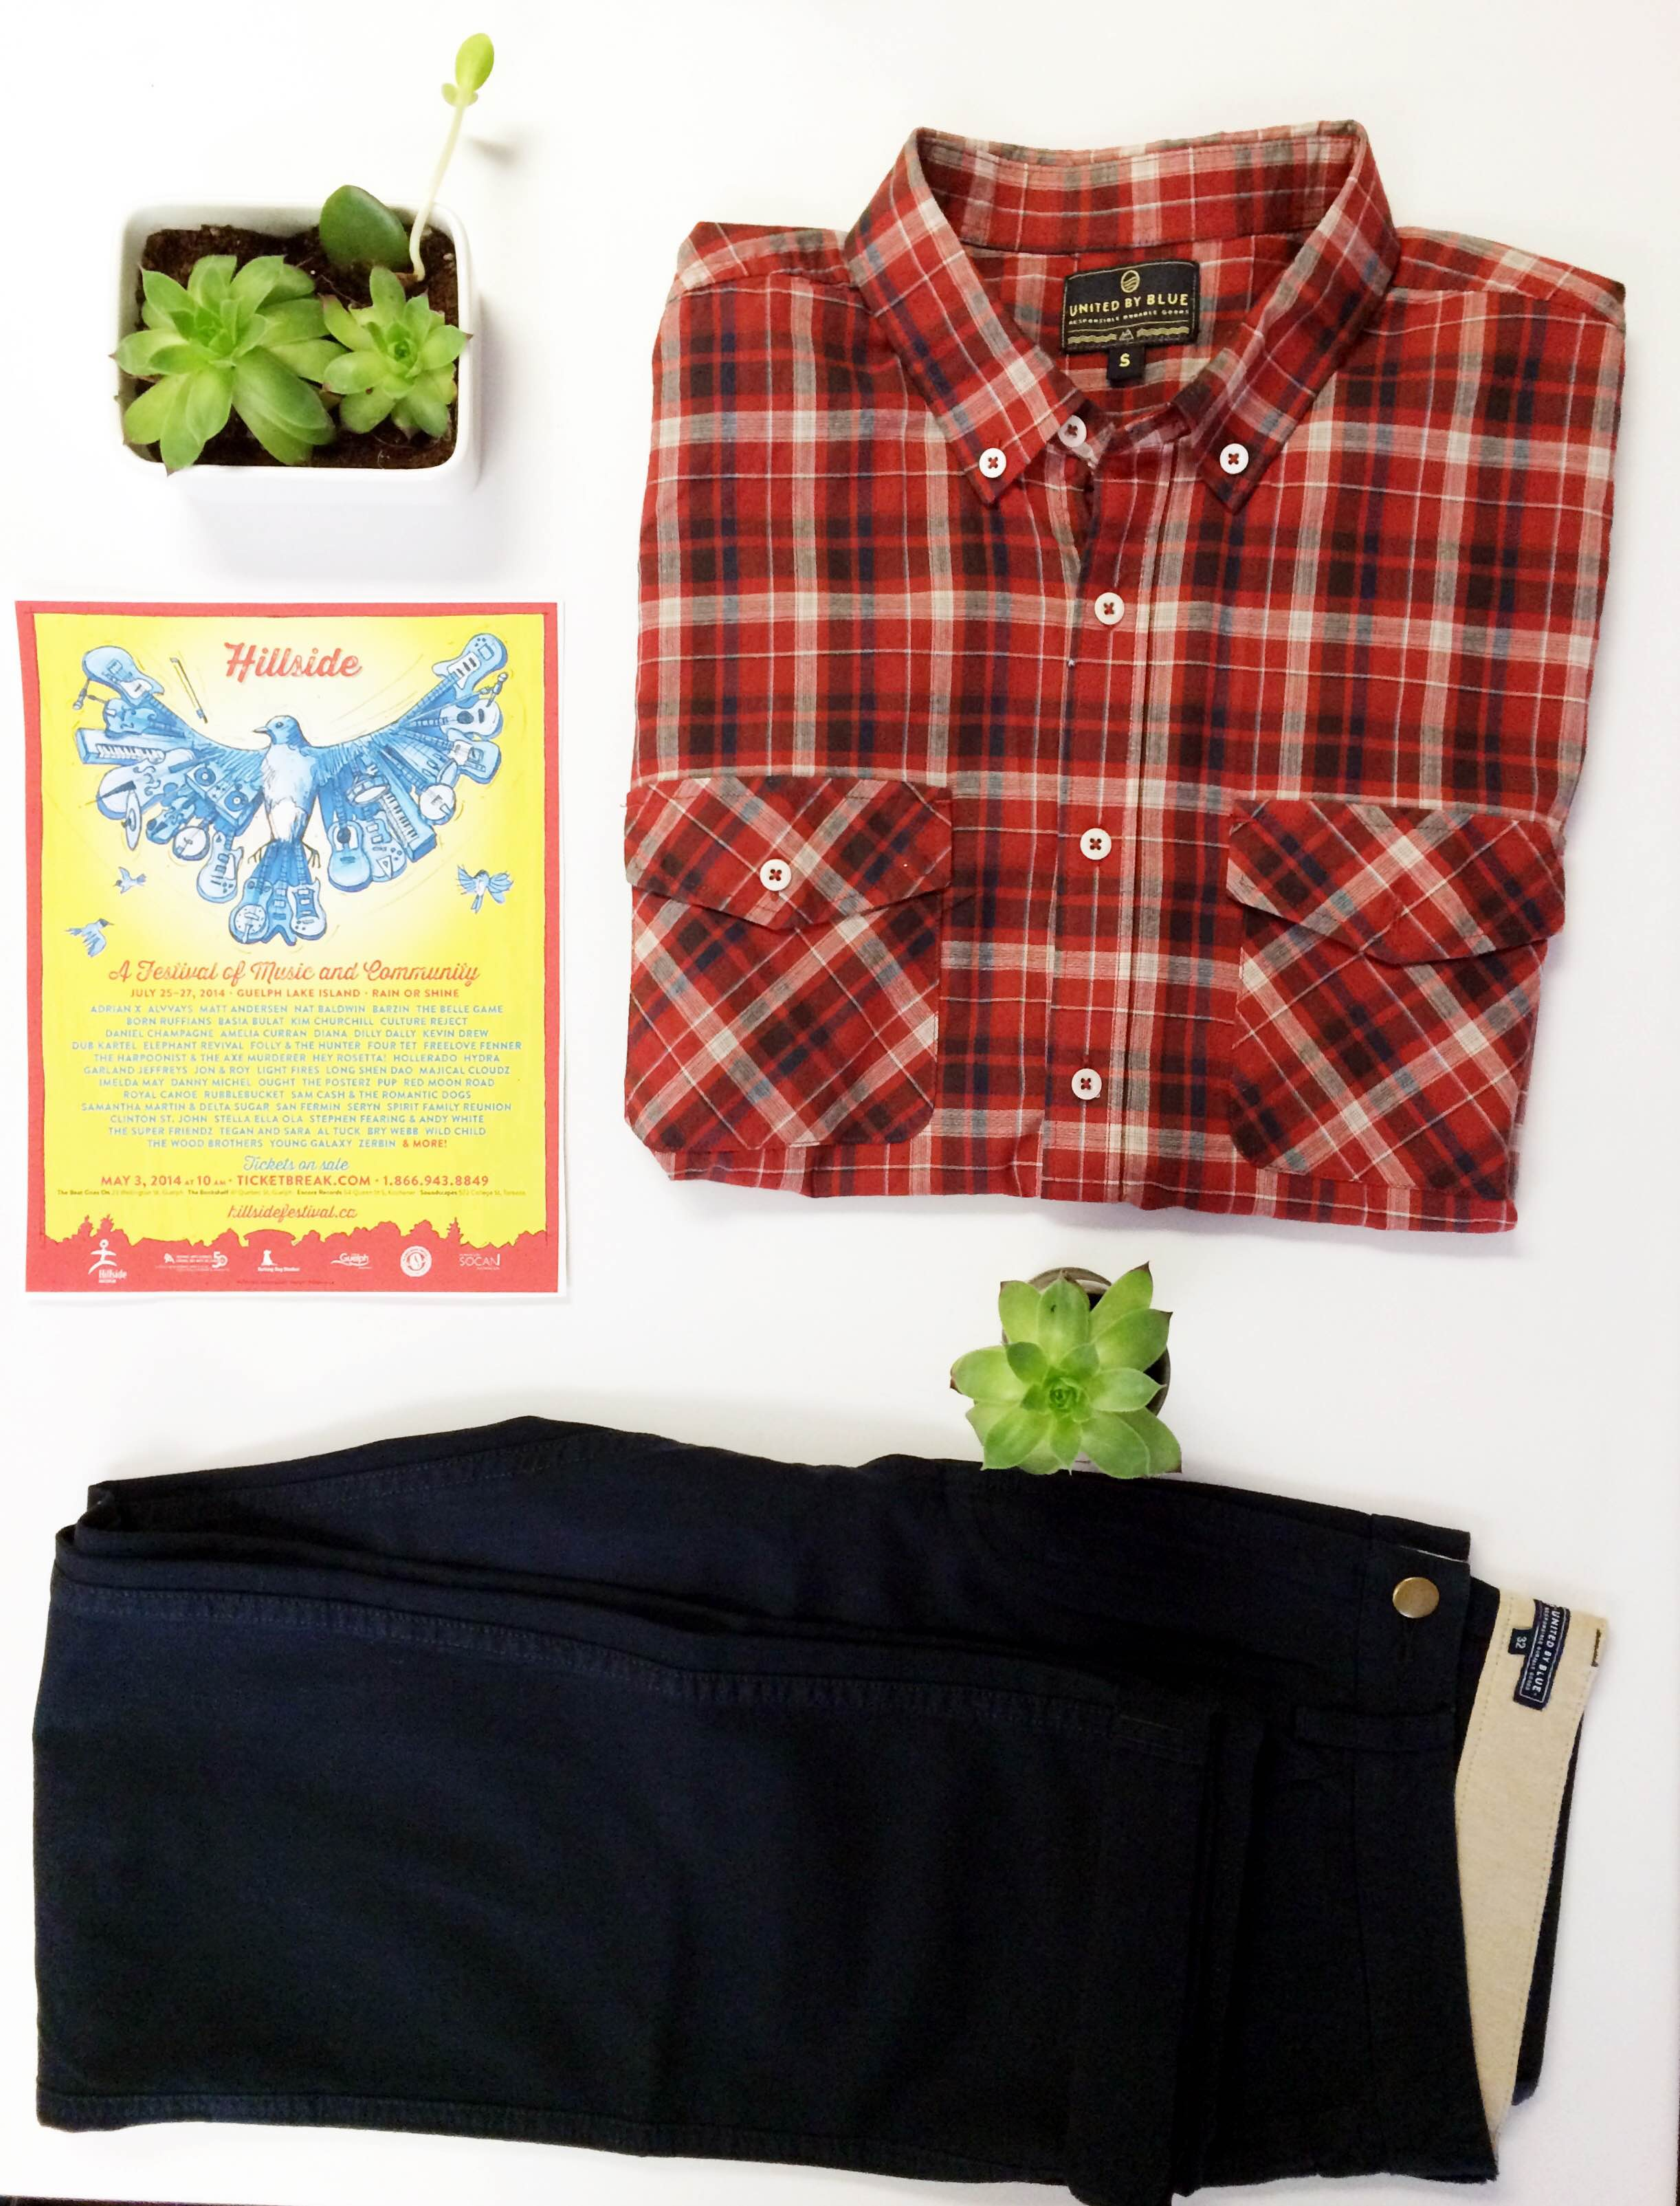 2014 Hillside was all about primary colours, so we are too! For the cooler nights, we're featuring United By Blue's plaid button down shirt and their twill pants. Both items are 100% organic cotton, so you'll feel cool but still warm.